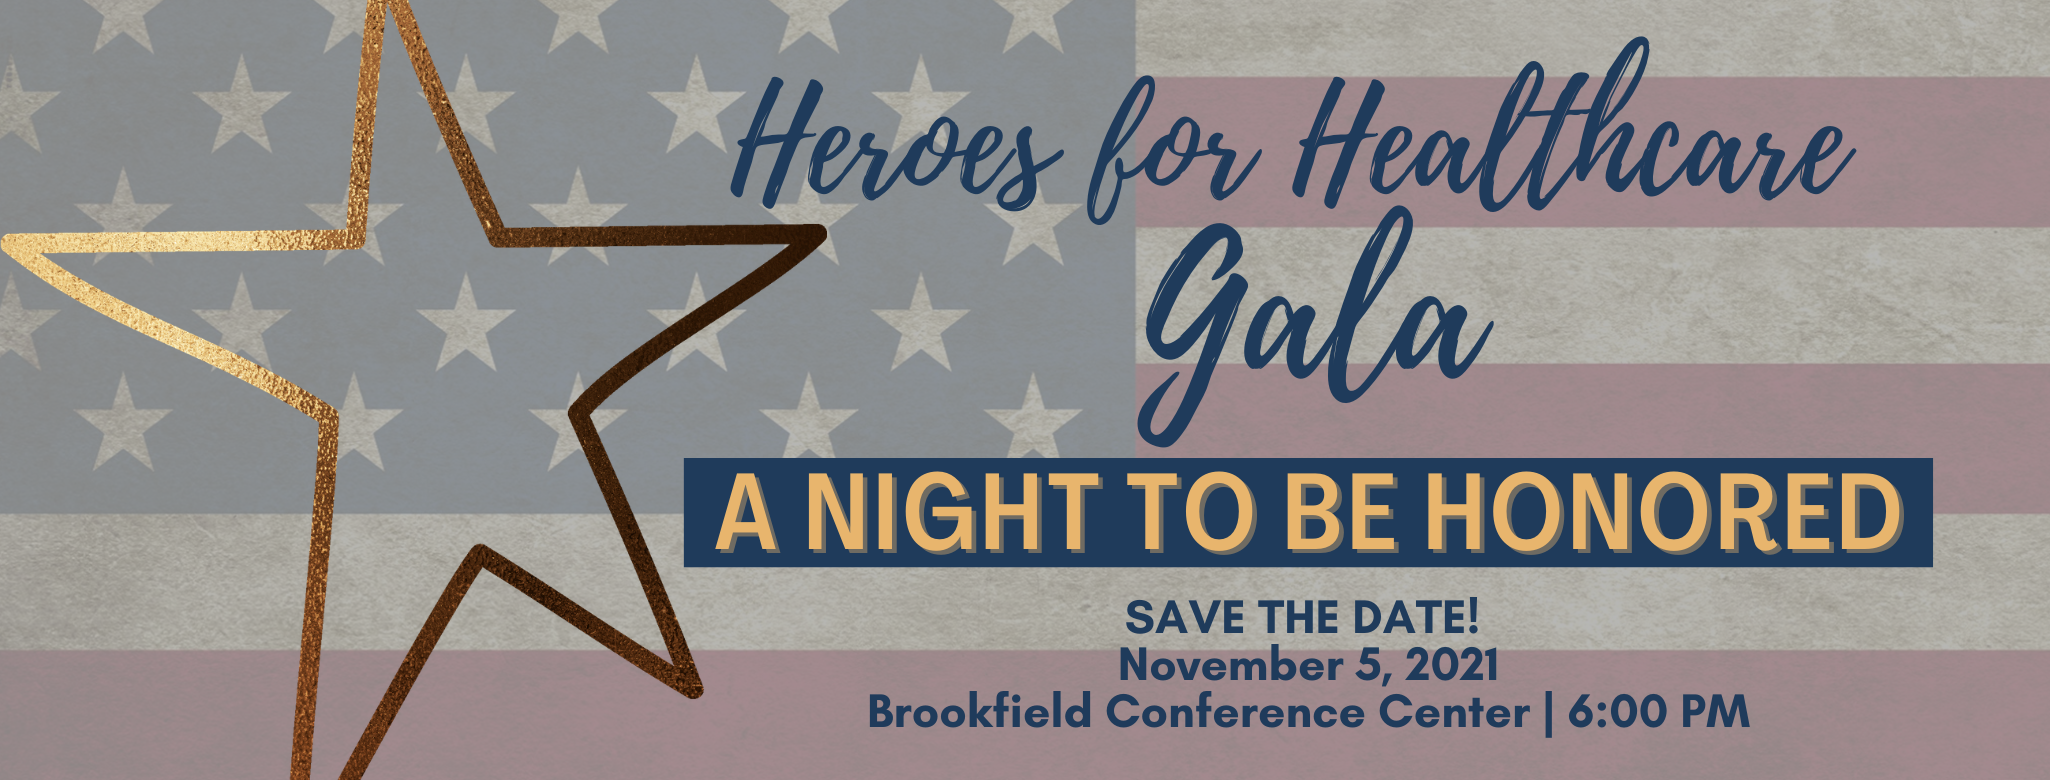 Heroes for Healthcare Gale A Night to be Honored (14)